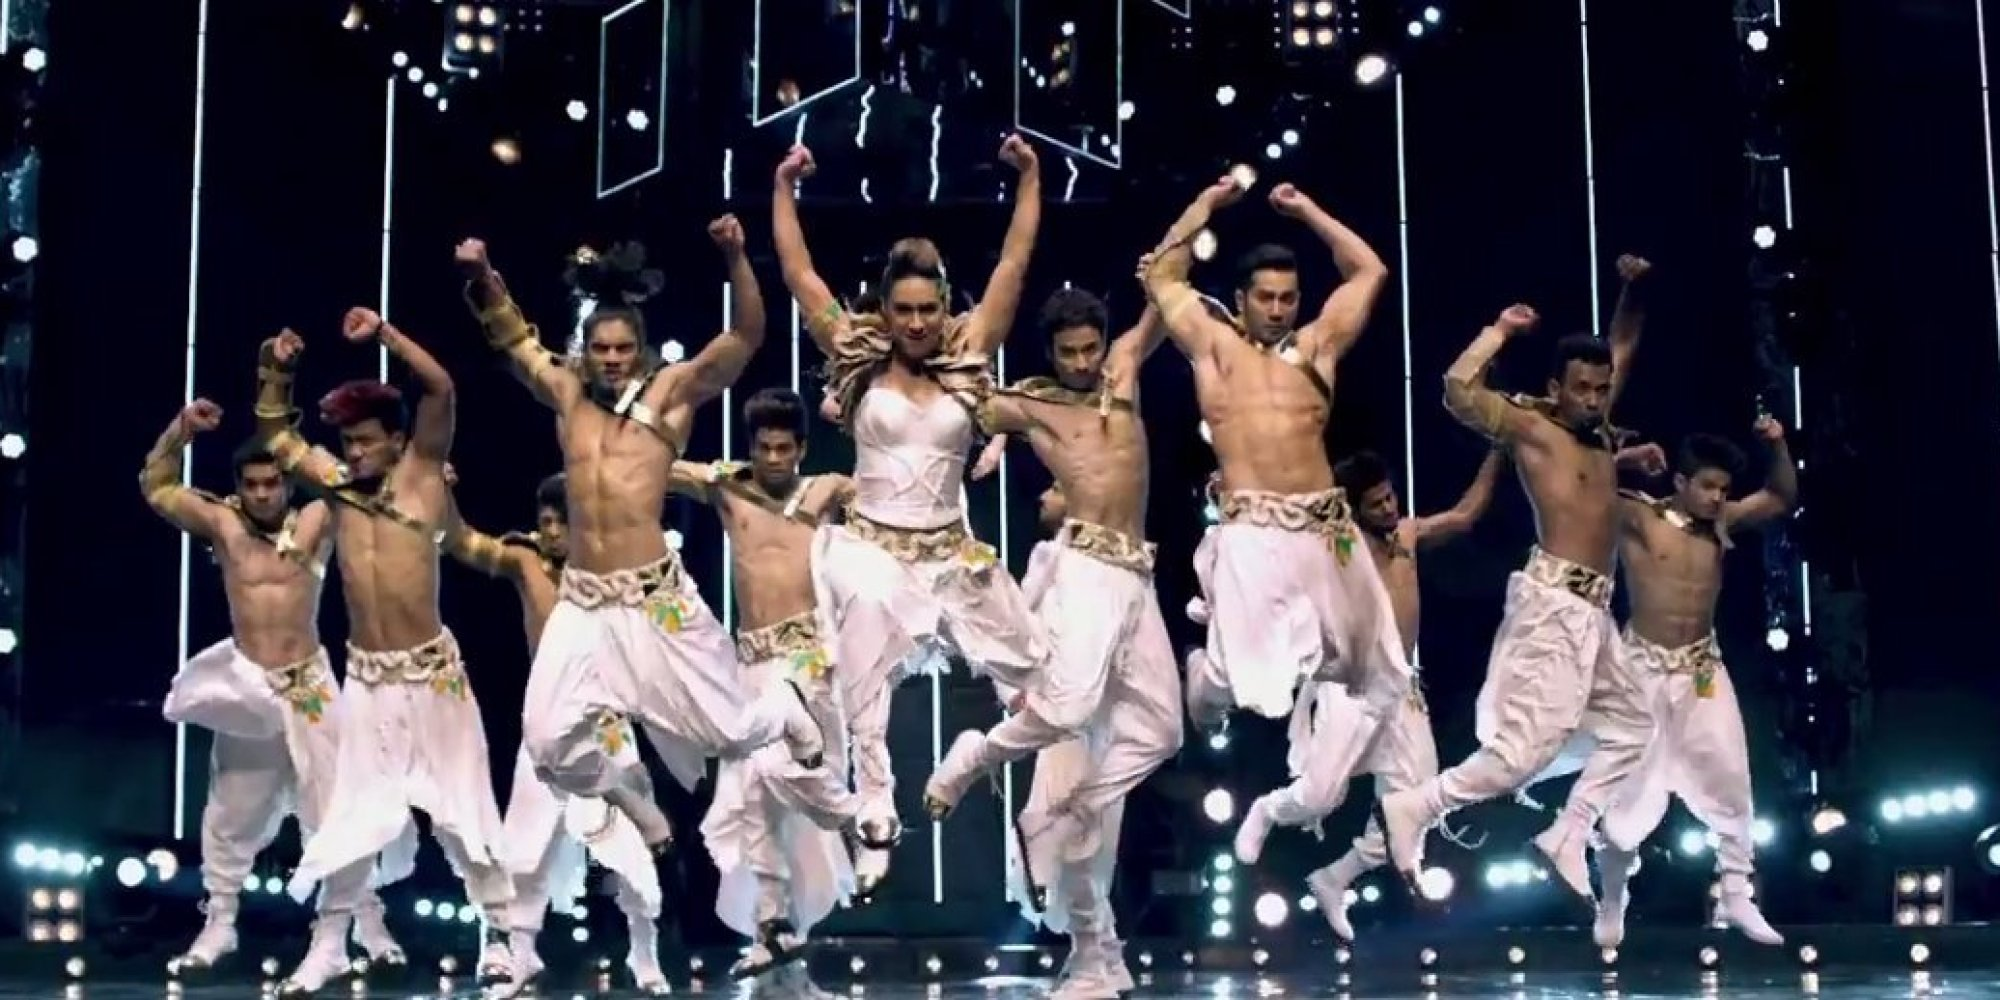 abcd2 s trailer sports some fresh faces and new moves